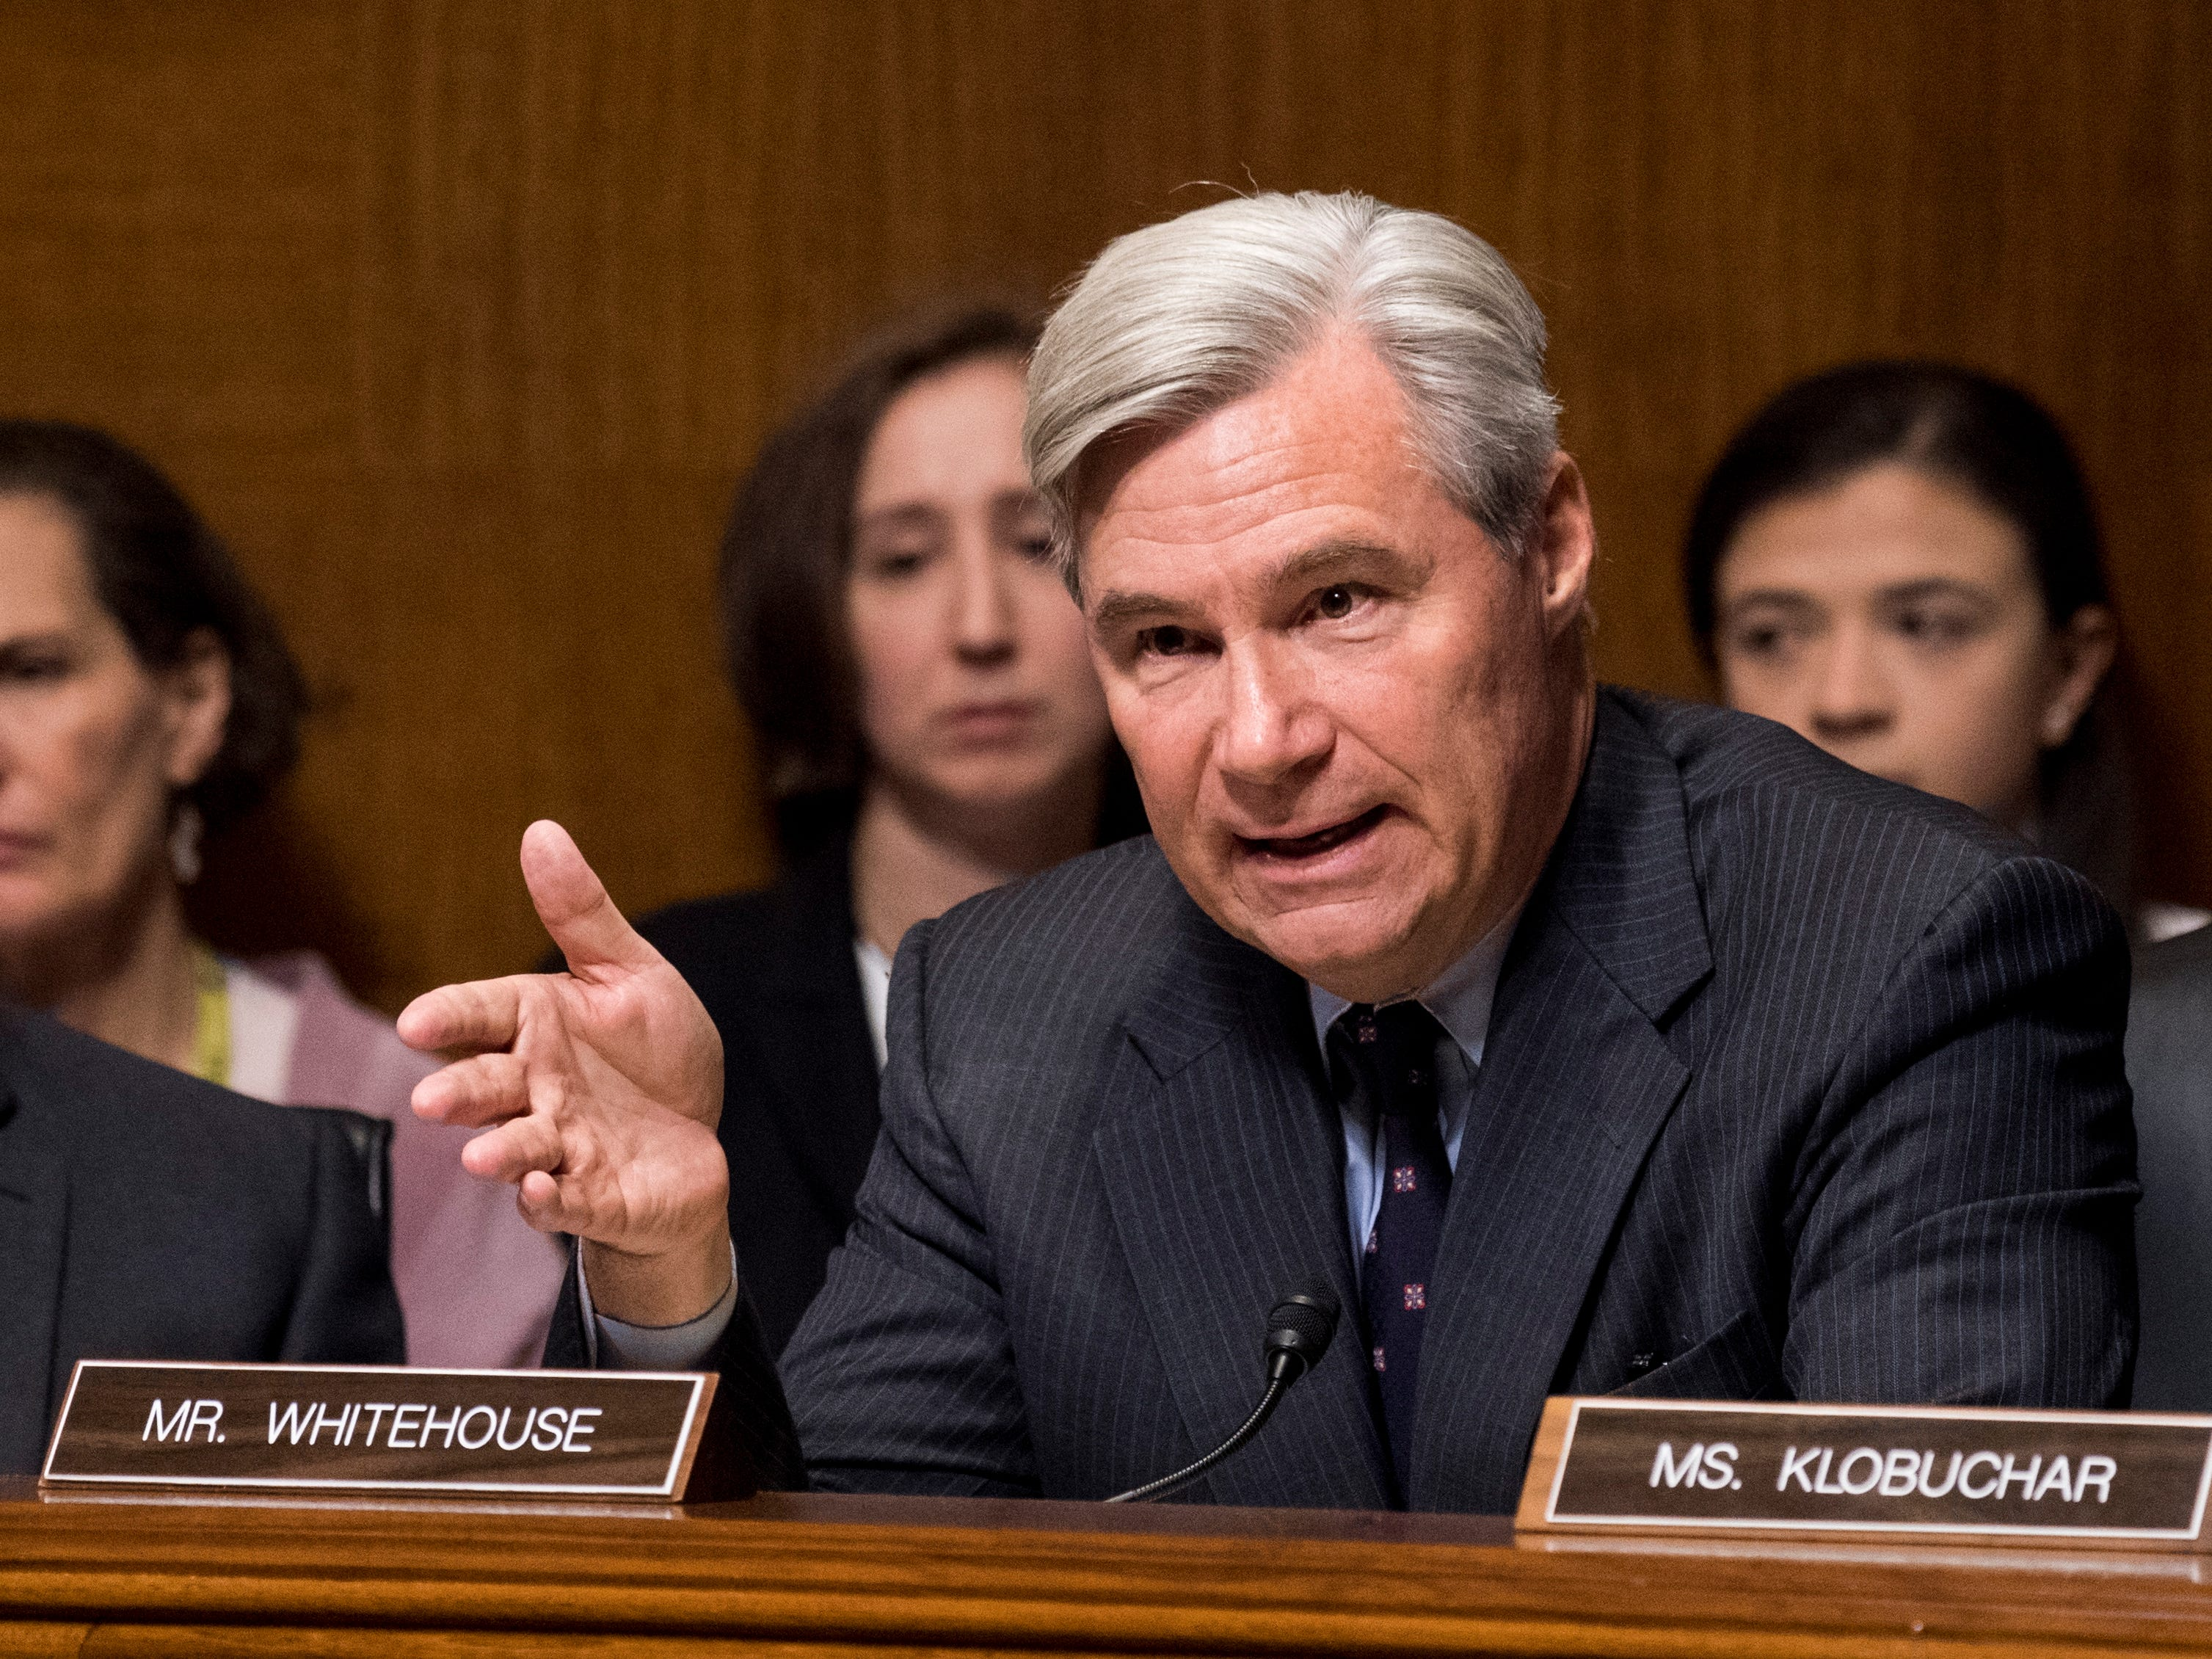 epa07051719 Senator Sheldon Whitehouse (C), D-R.I., questions Christine Blasey Ford (unseen) as Senator Richard Durbin (L), D-Ill., and Senator Amy Klobuchar (R), D-Minn., listen during the Senate Judiciary Committee hearing on the nomination of Brett Kavanaugh to be an associate justice of the Supreme Court of the United States, on Capitol Hill in Washington, DC, USA, 27 September 2018. US President Donald J. Trump's nominee to be a US Supreme Court associate justice Brett Kavanaugh is in a tumultuous confirmation process as multiple women have accused Kavanaugh of sexual misconduct.  EPA-EFE/TOM WILLIAMS / POOL